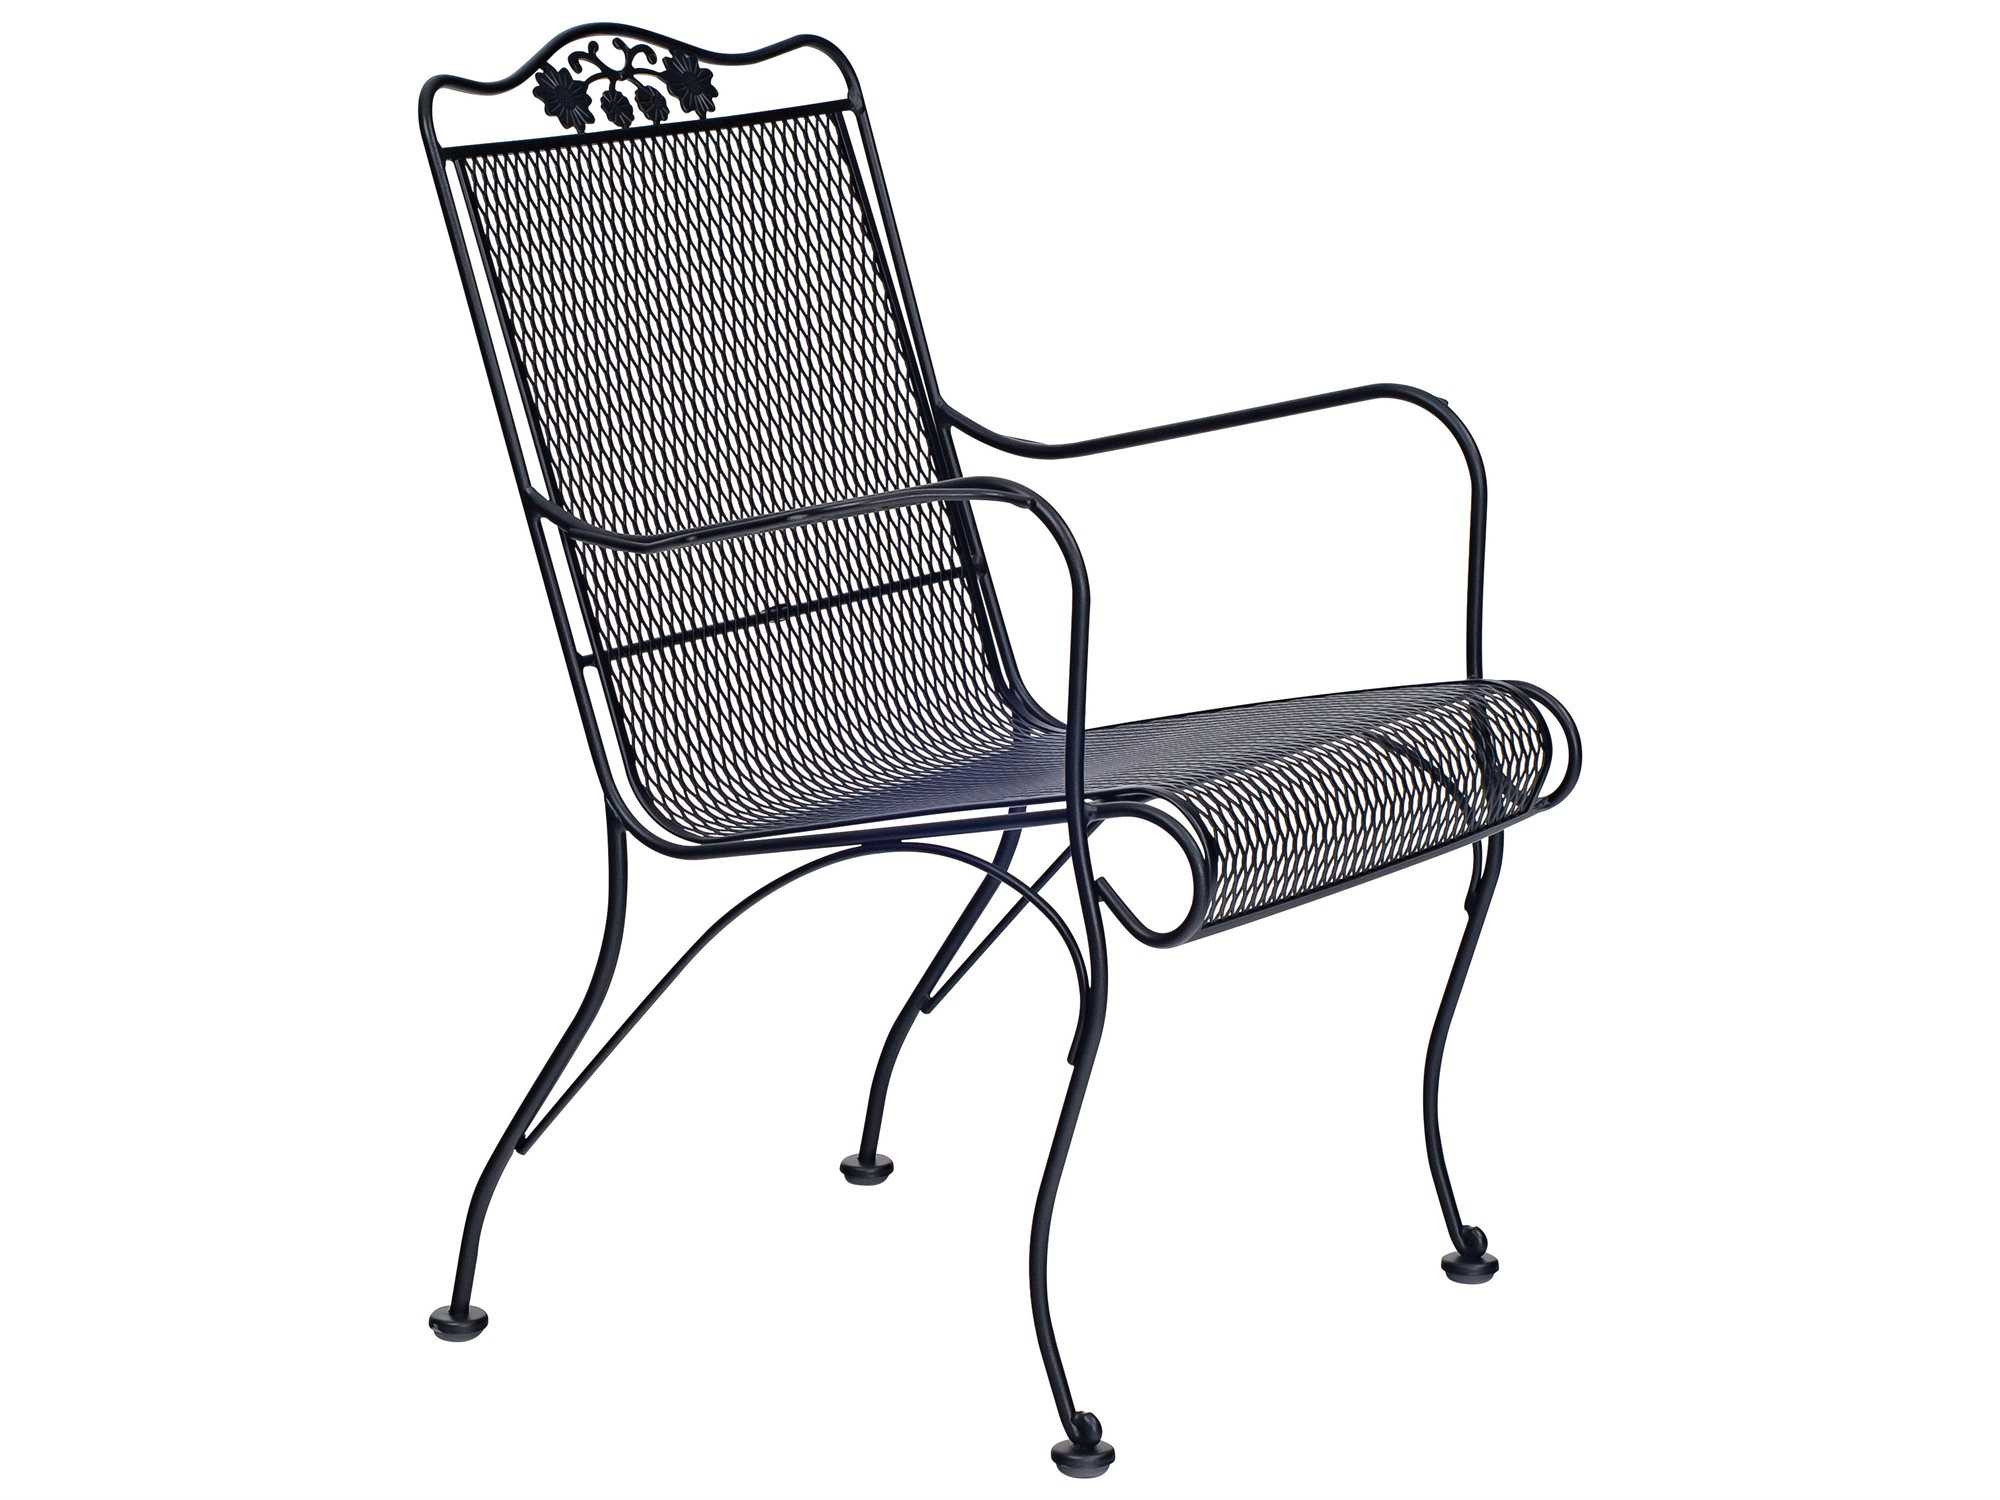 Woodard Briarwood High Back Lounge Chair Seat Replacement